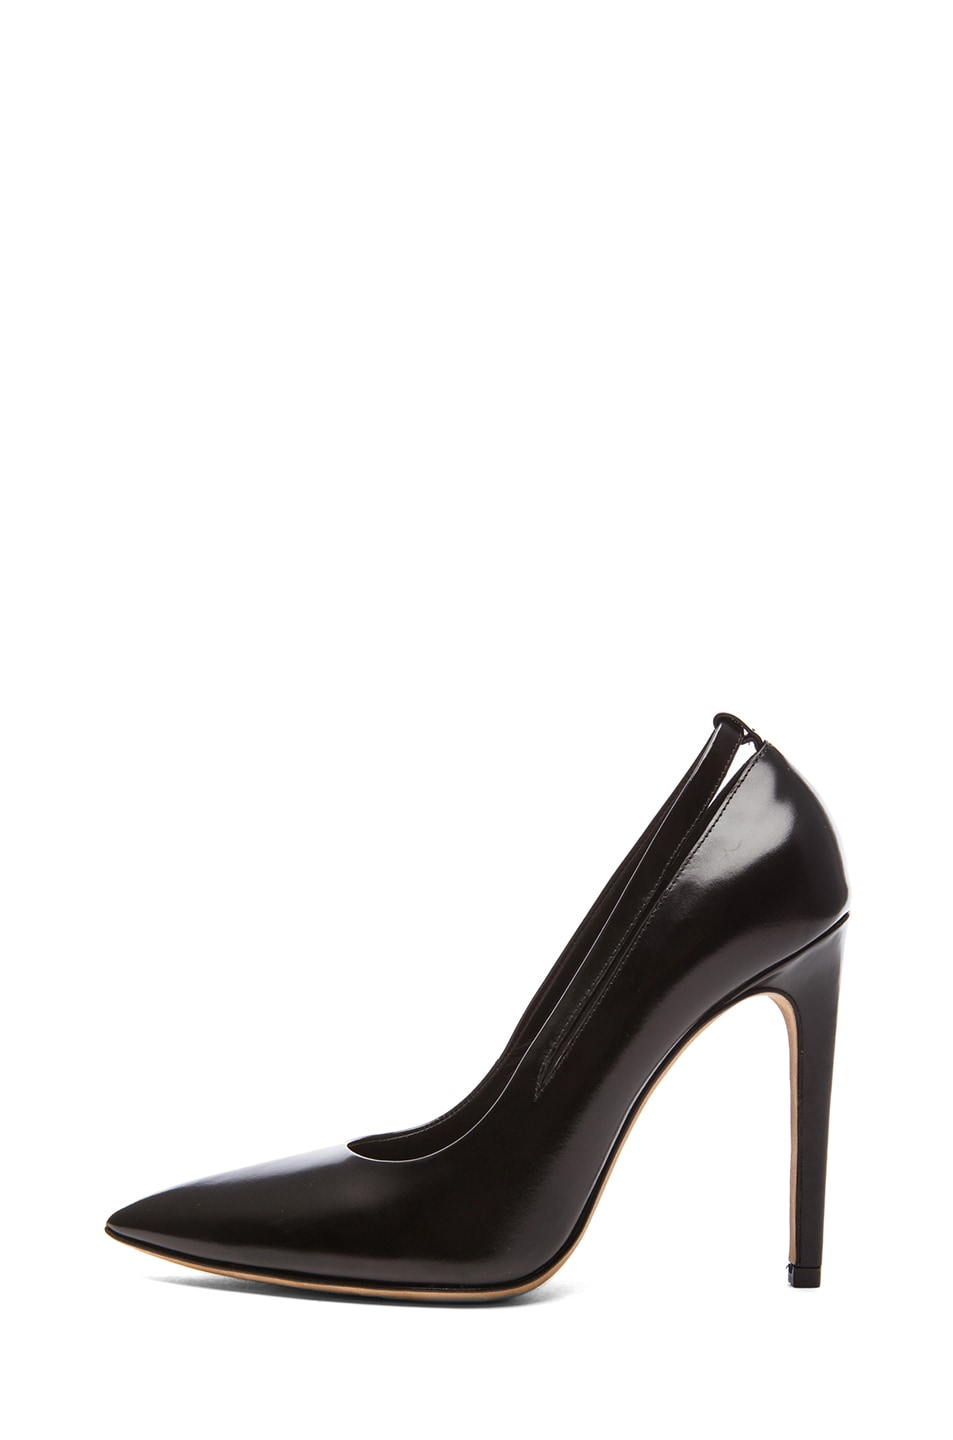 Image 1 of Alexander Wang Kiko Shiny Leather Pumps in Black